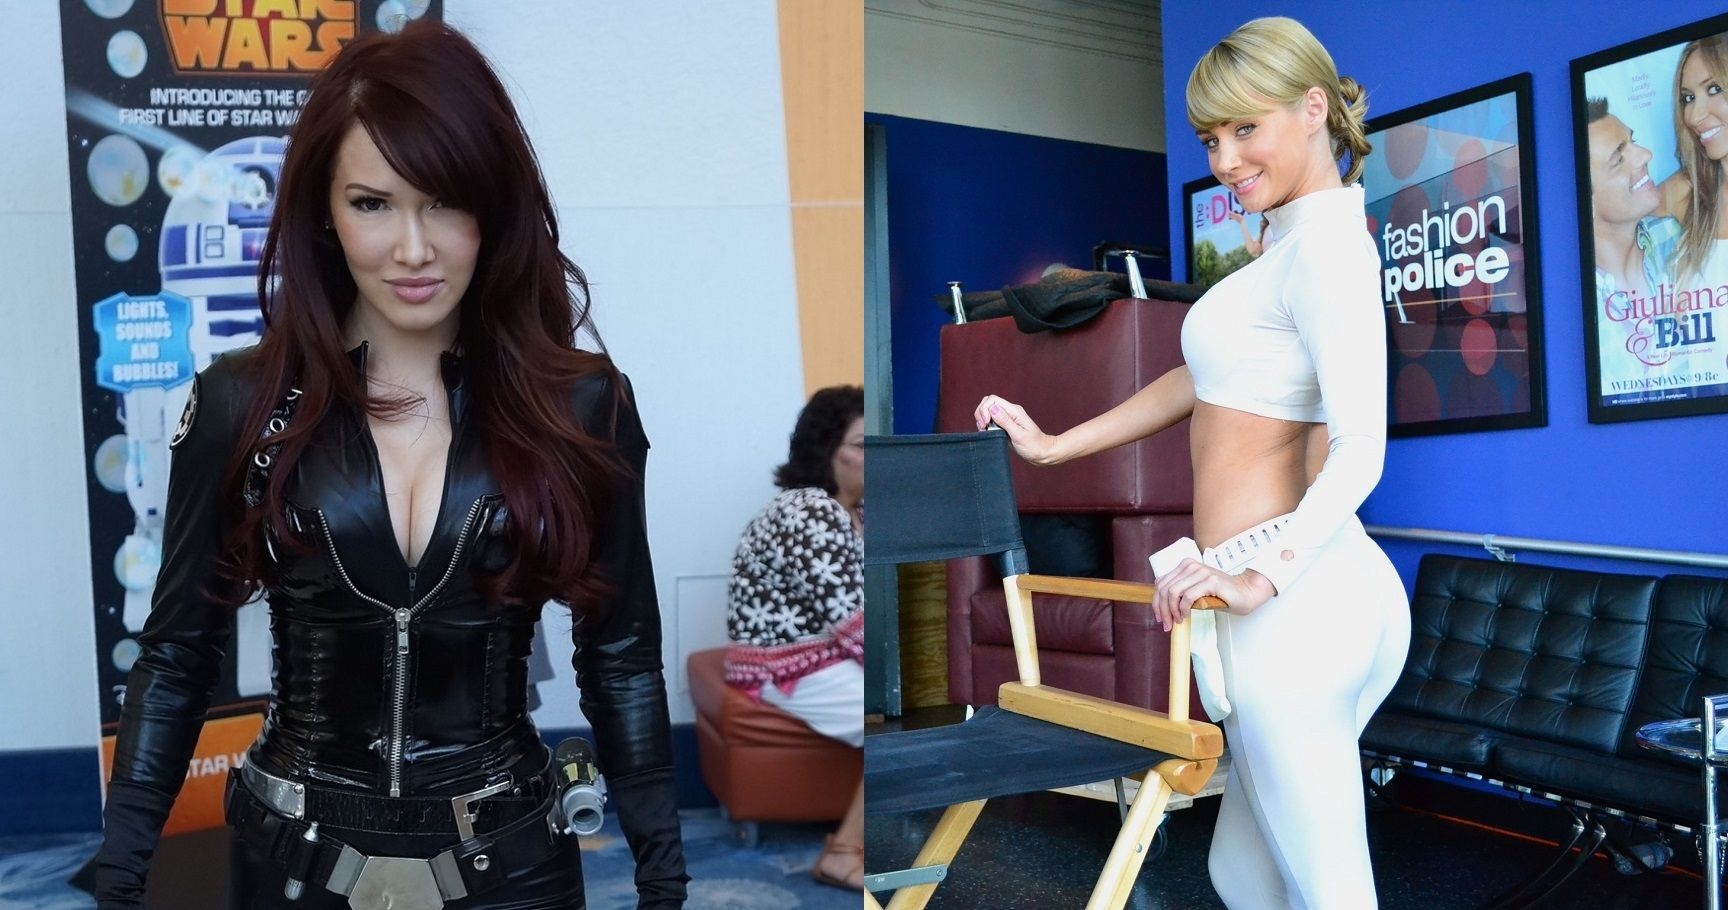 20 of the Sexiest Star Wars Cosplayers